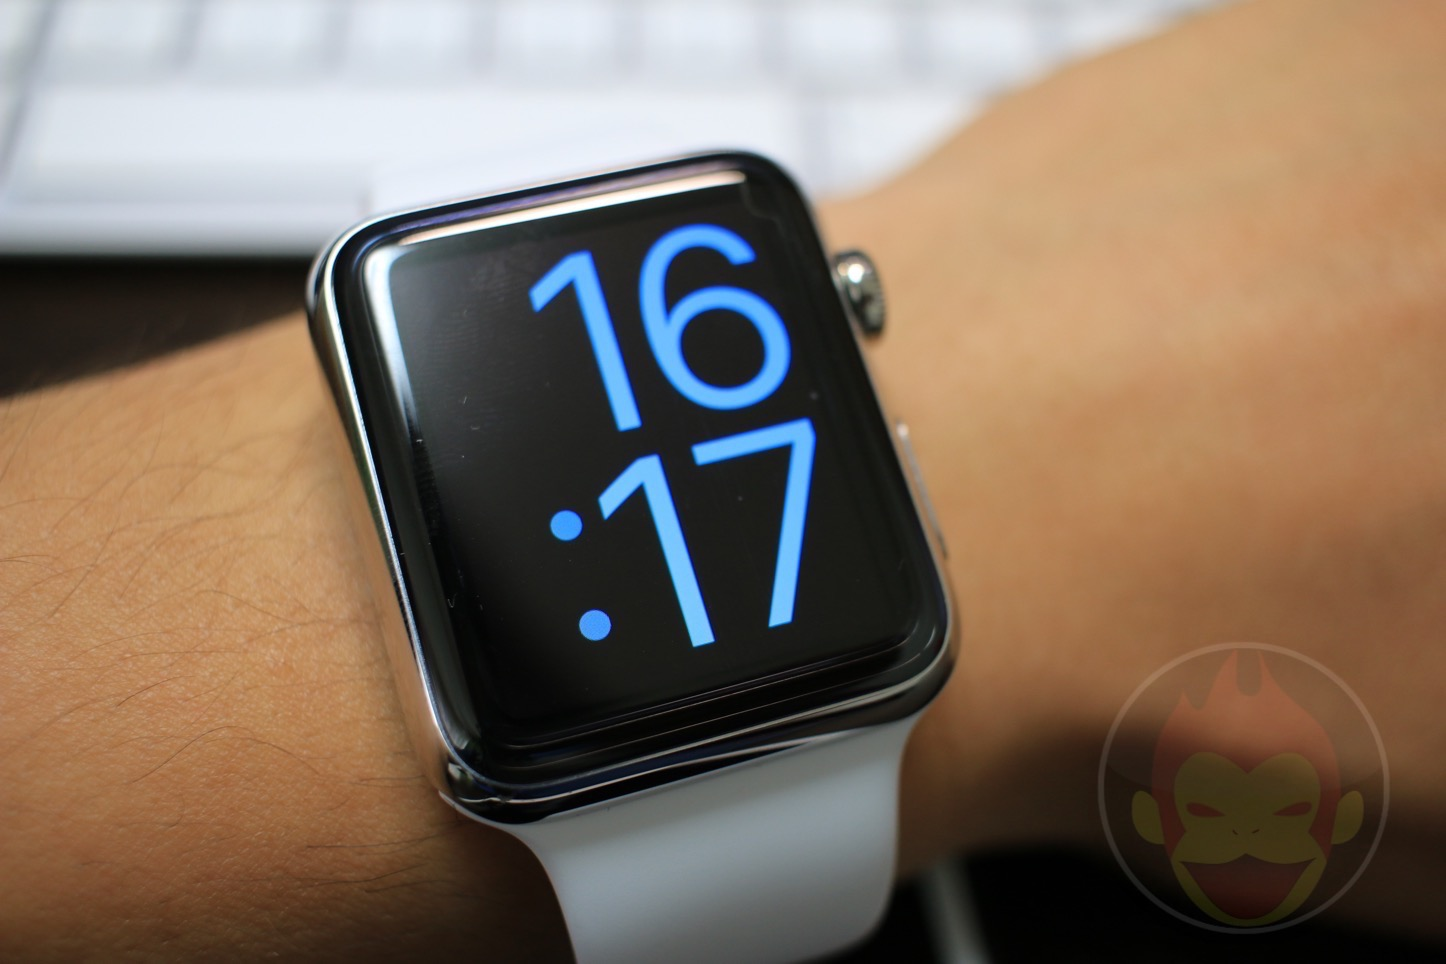 Apple-Watch-Getting-Most-Out-Of-Battery-0004.JPG